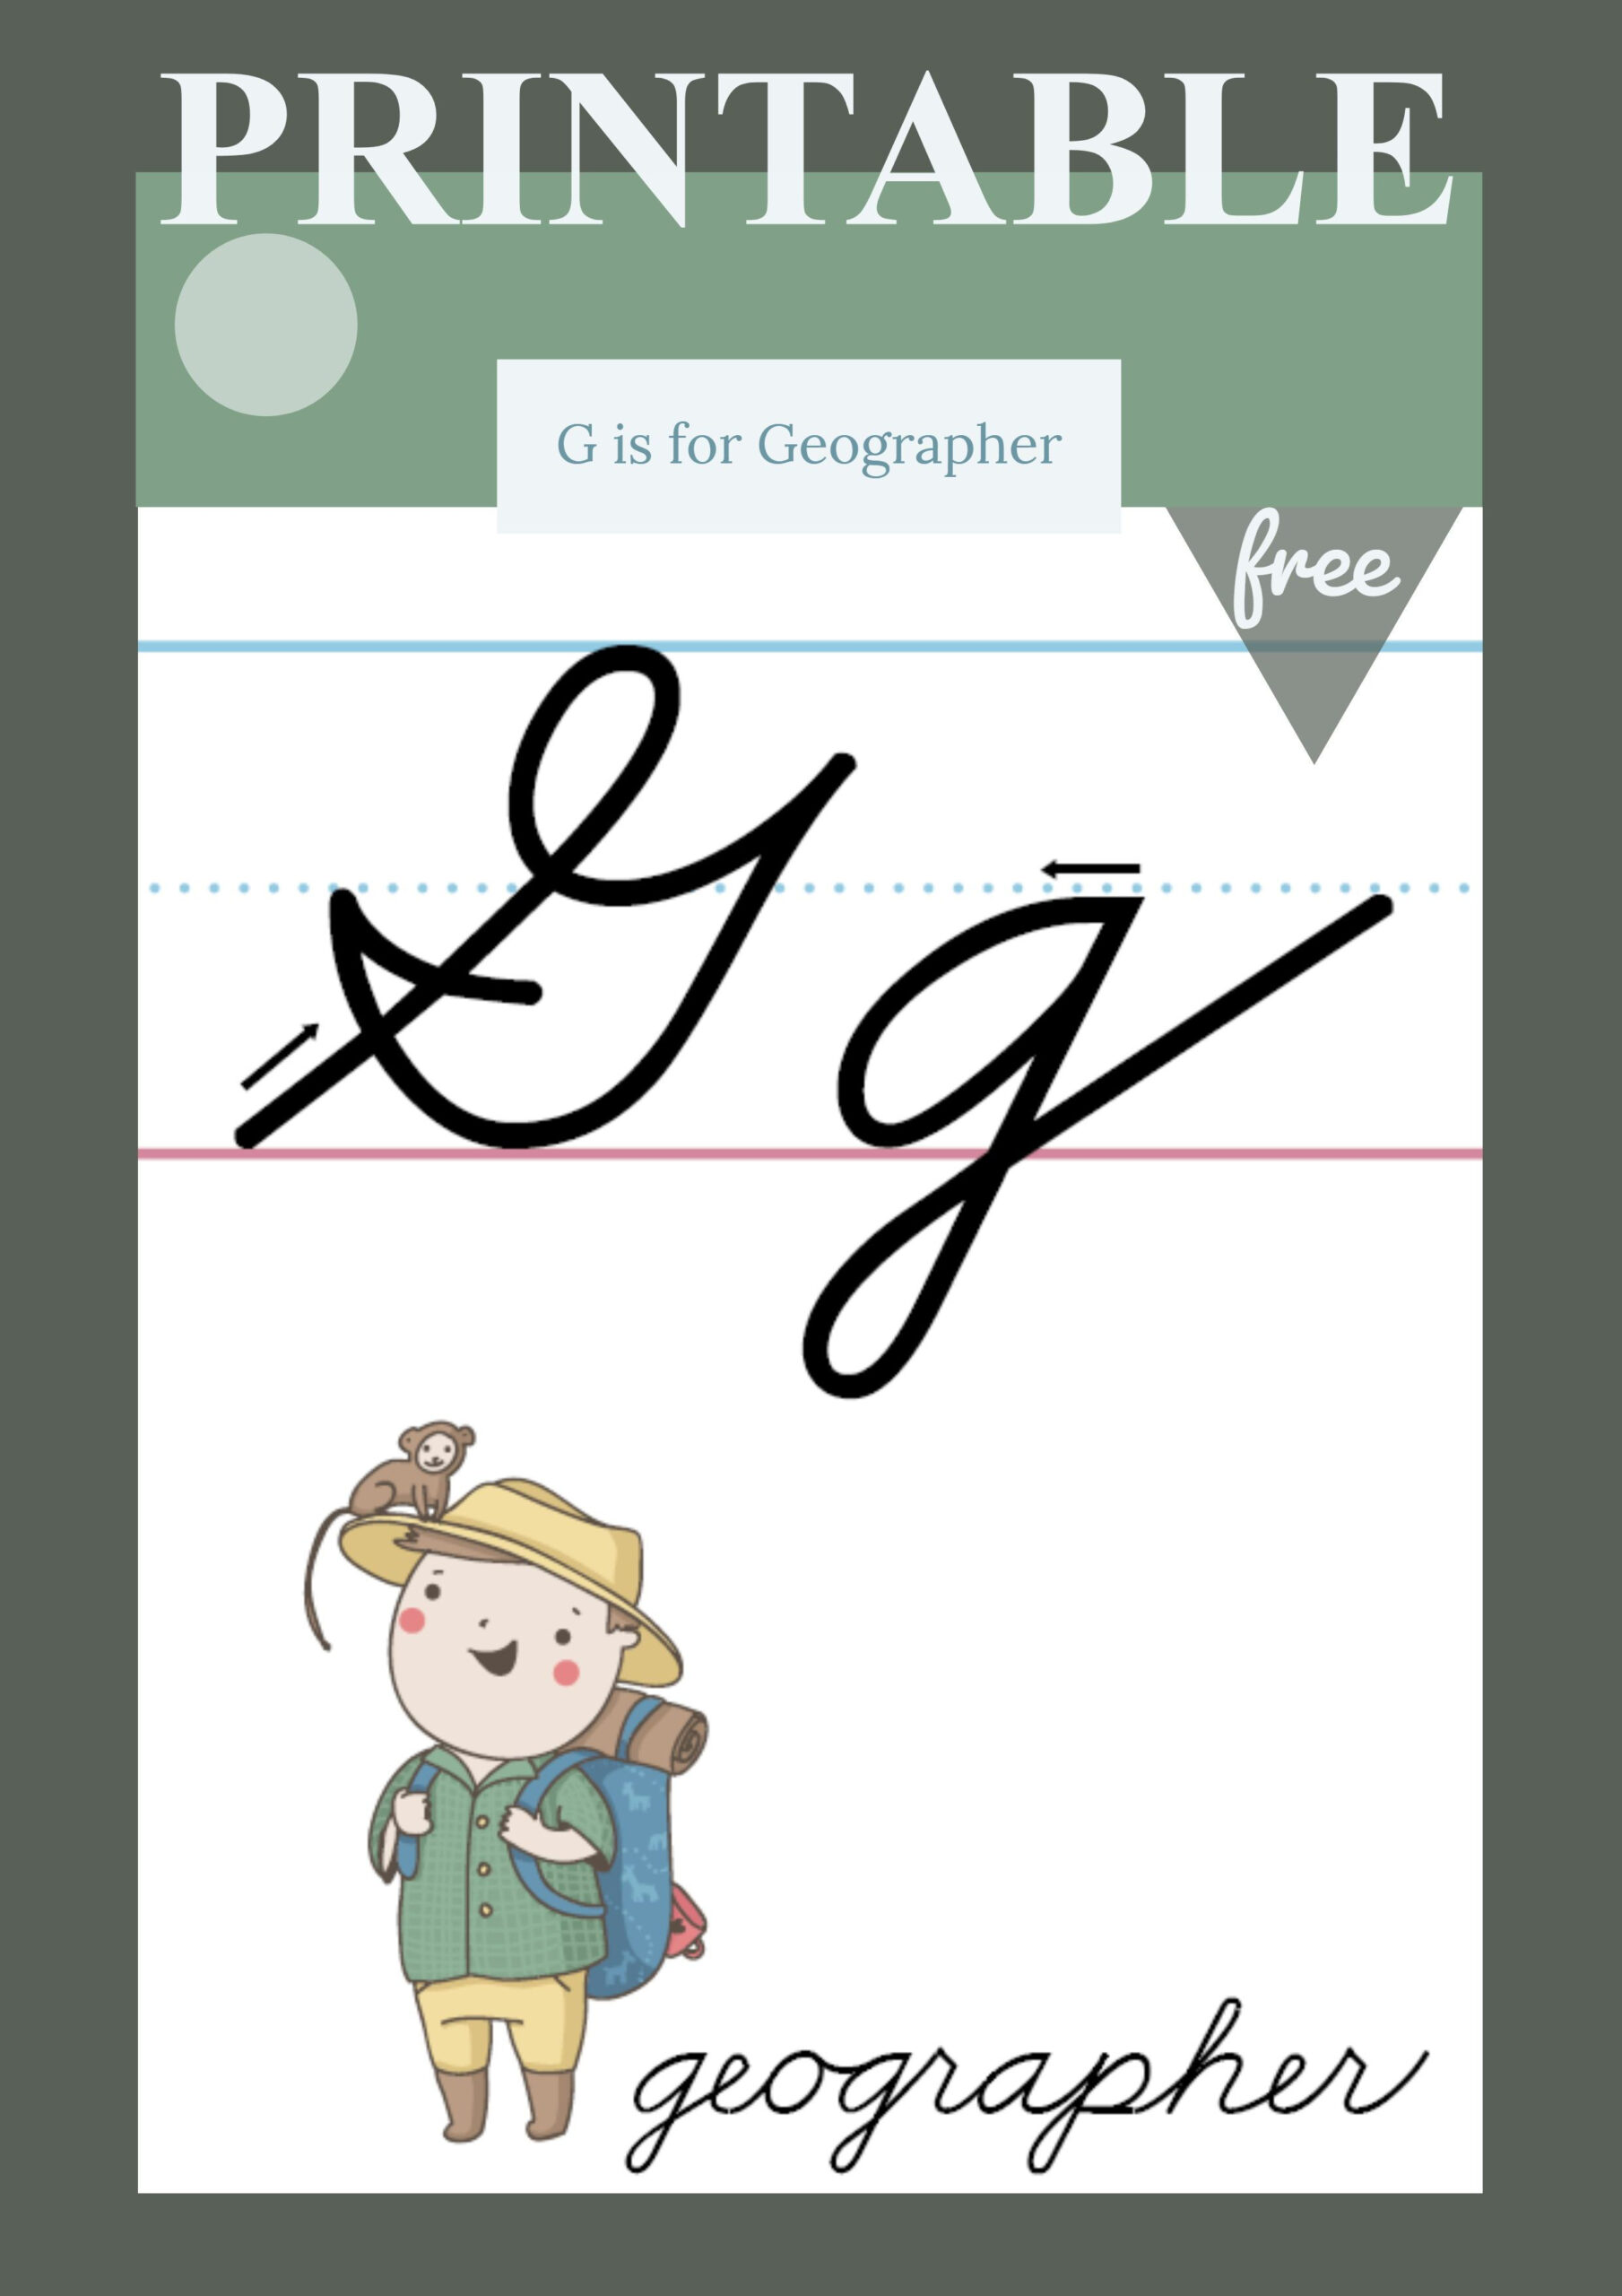 The Letter G In Cursive - Printable Poster (With Images) | G